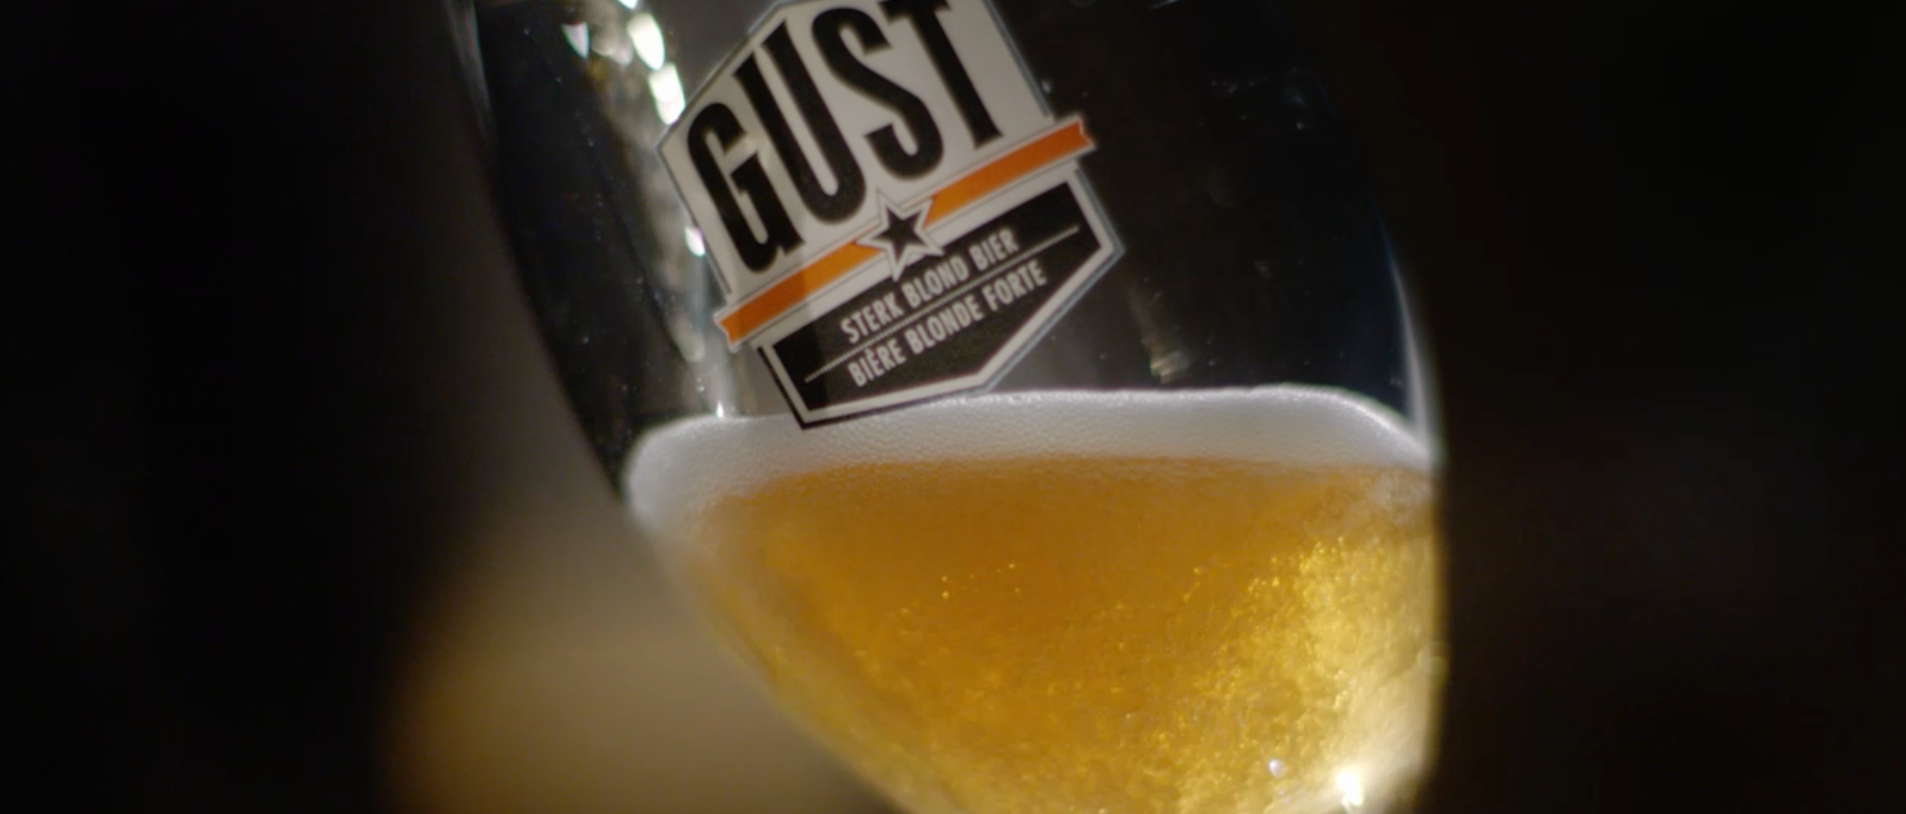 Gust - Strong Blond Beer